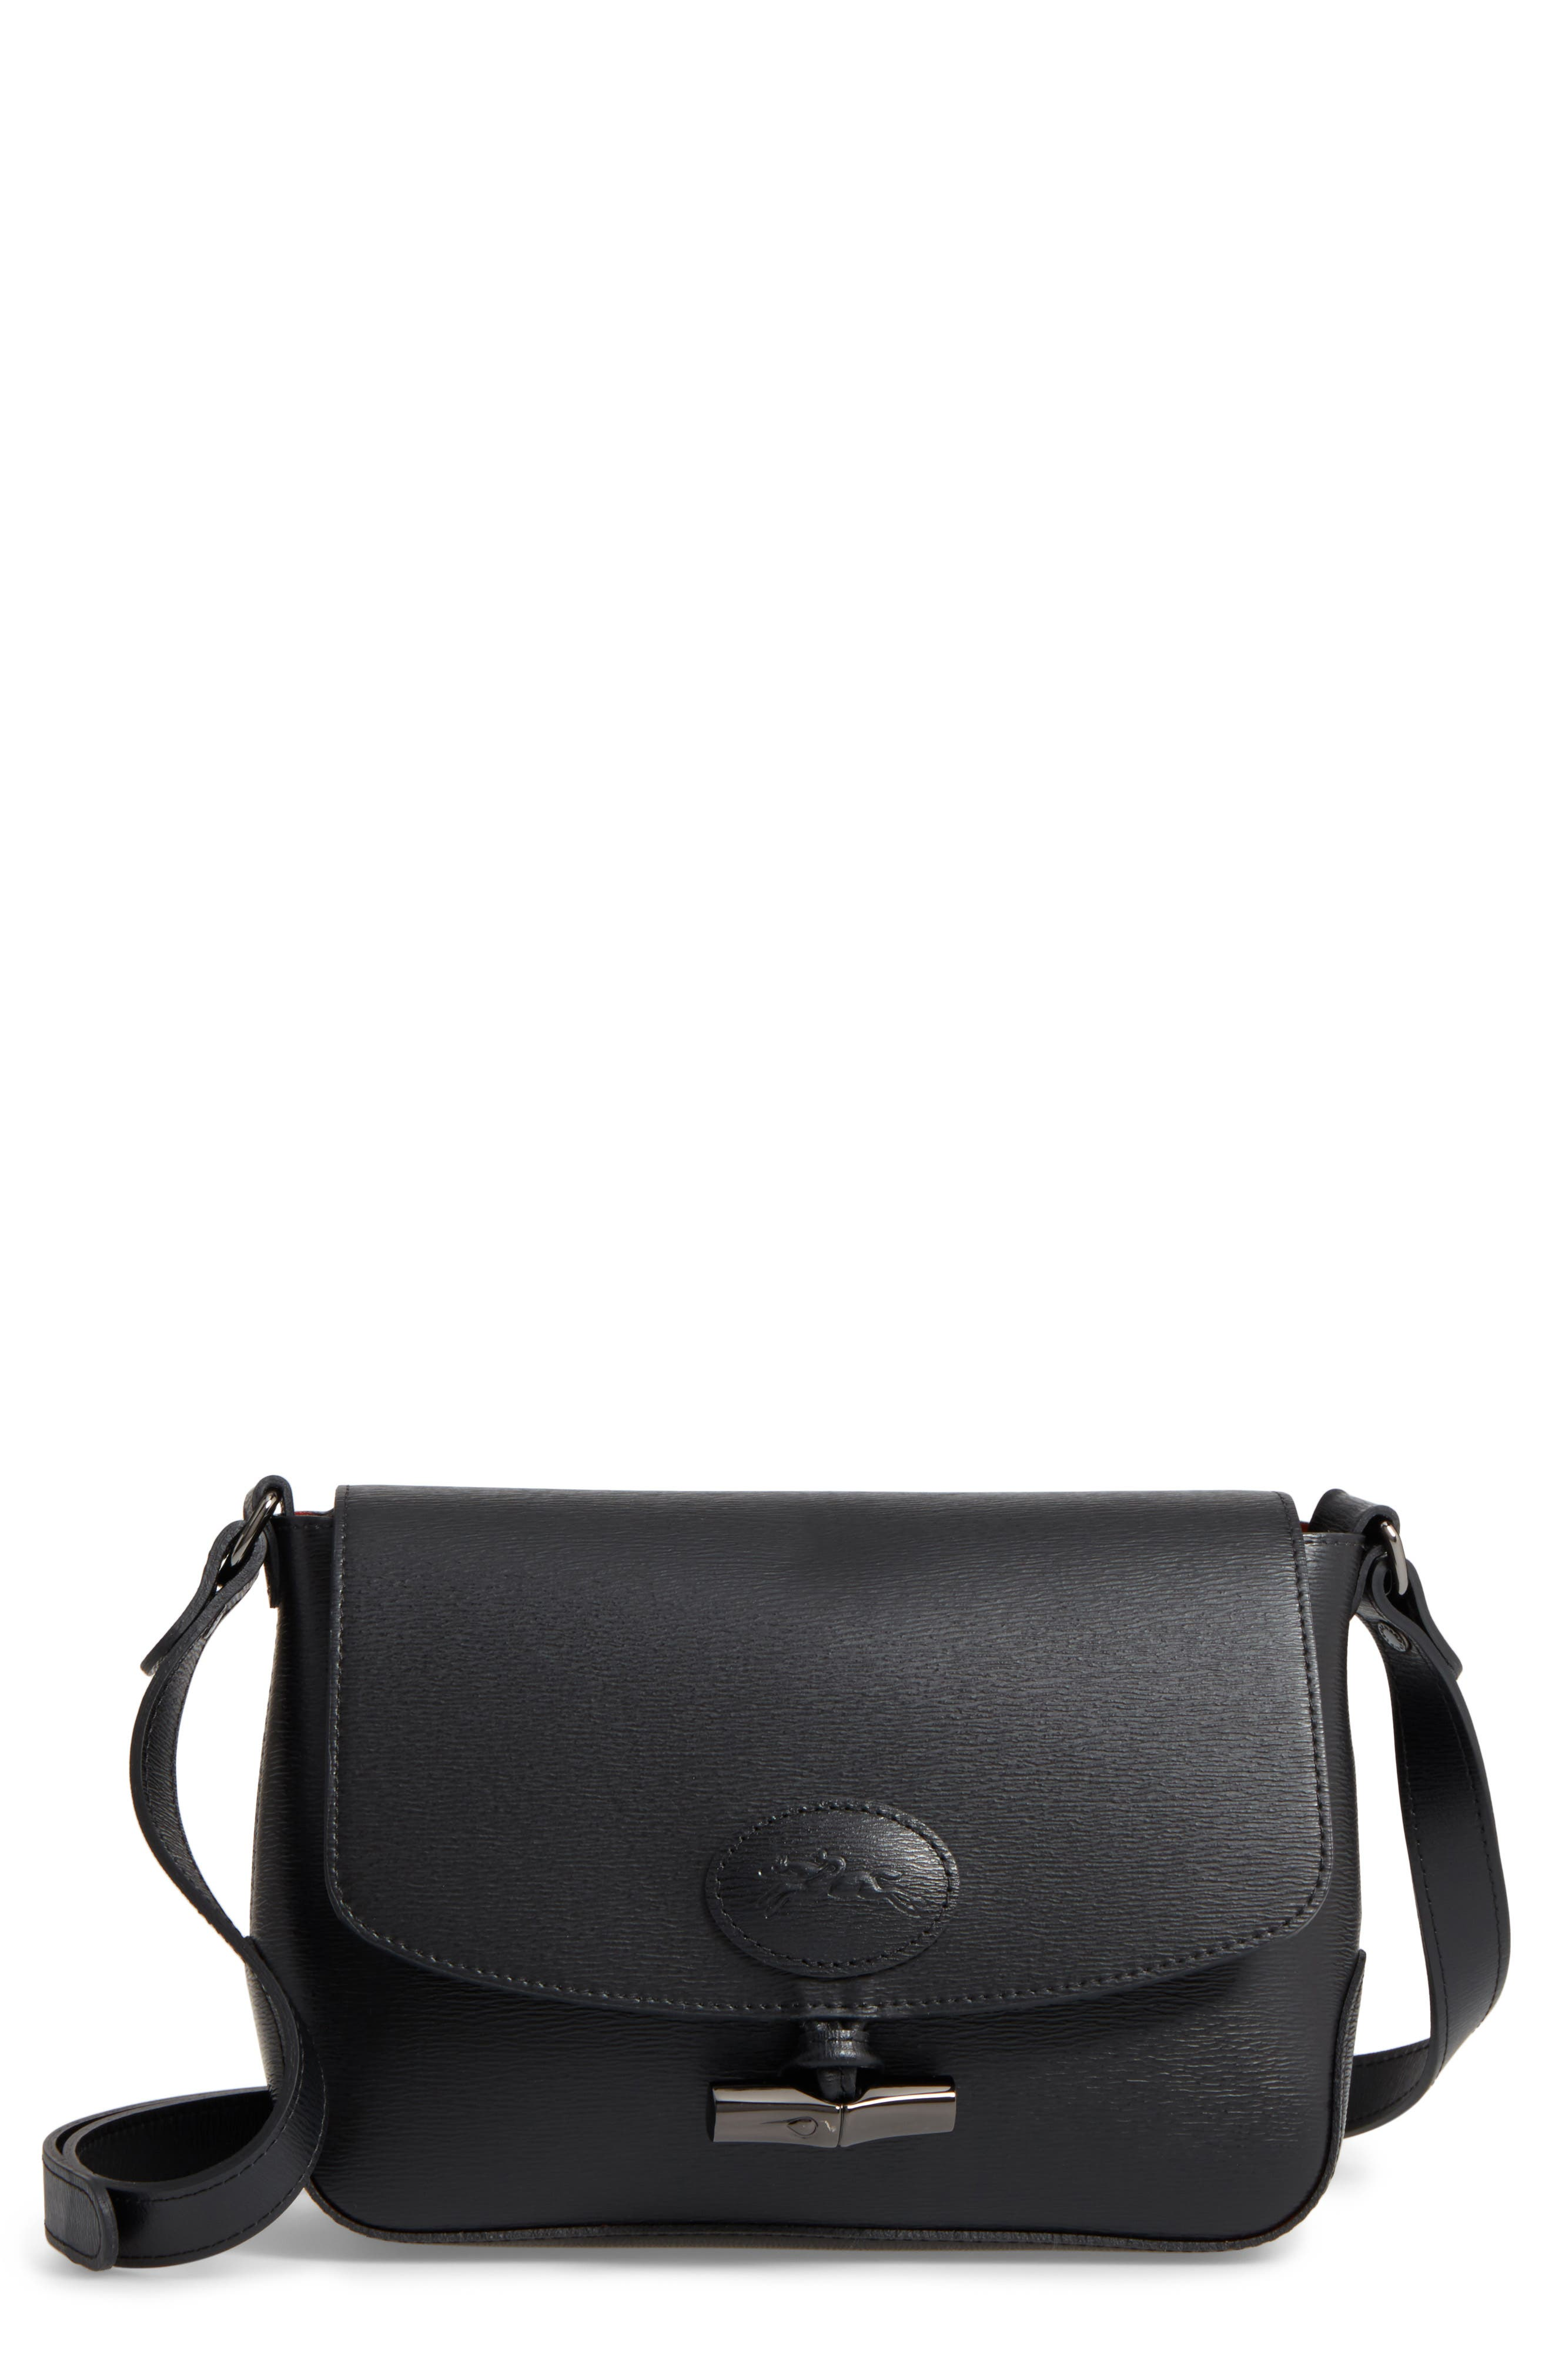 Roseau Leather Crossbody Bag,                         Main,                         color, Black